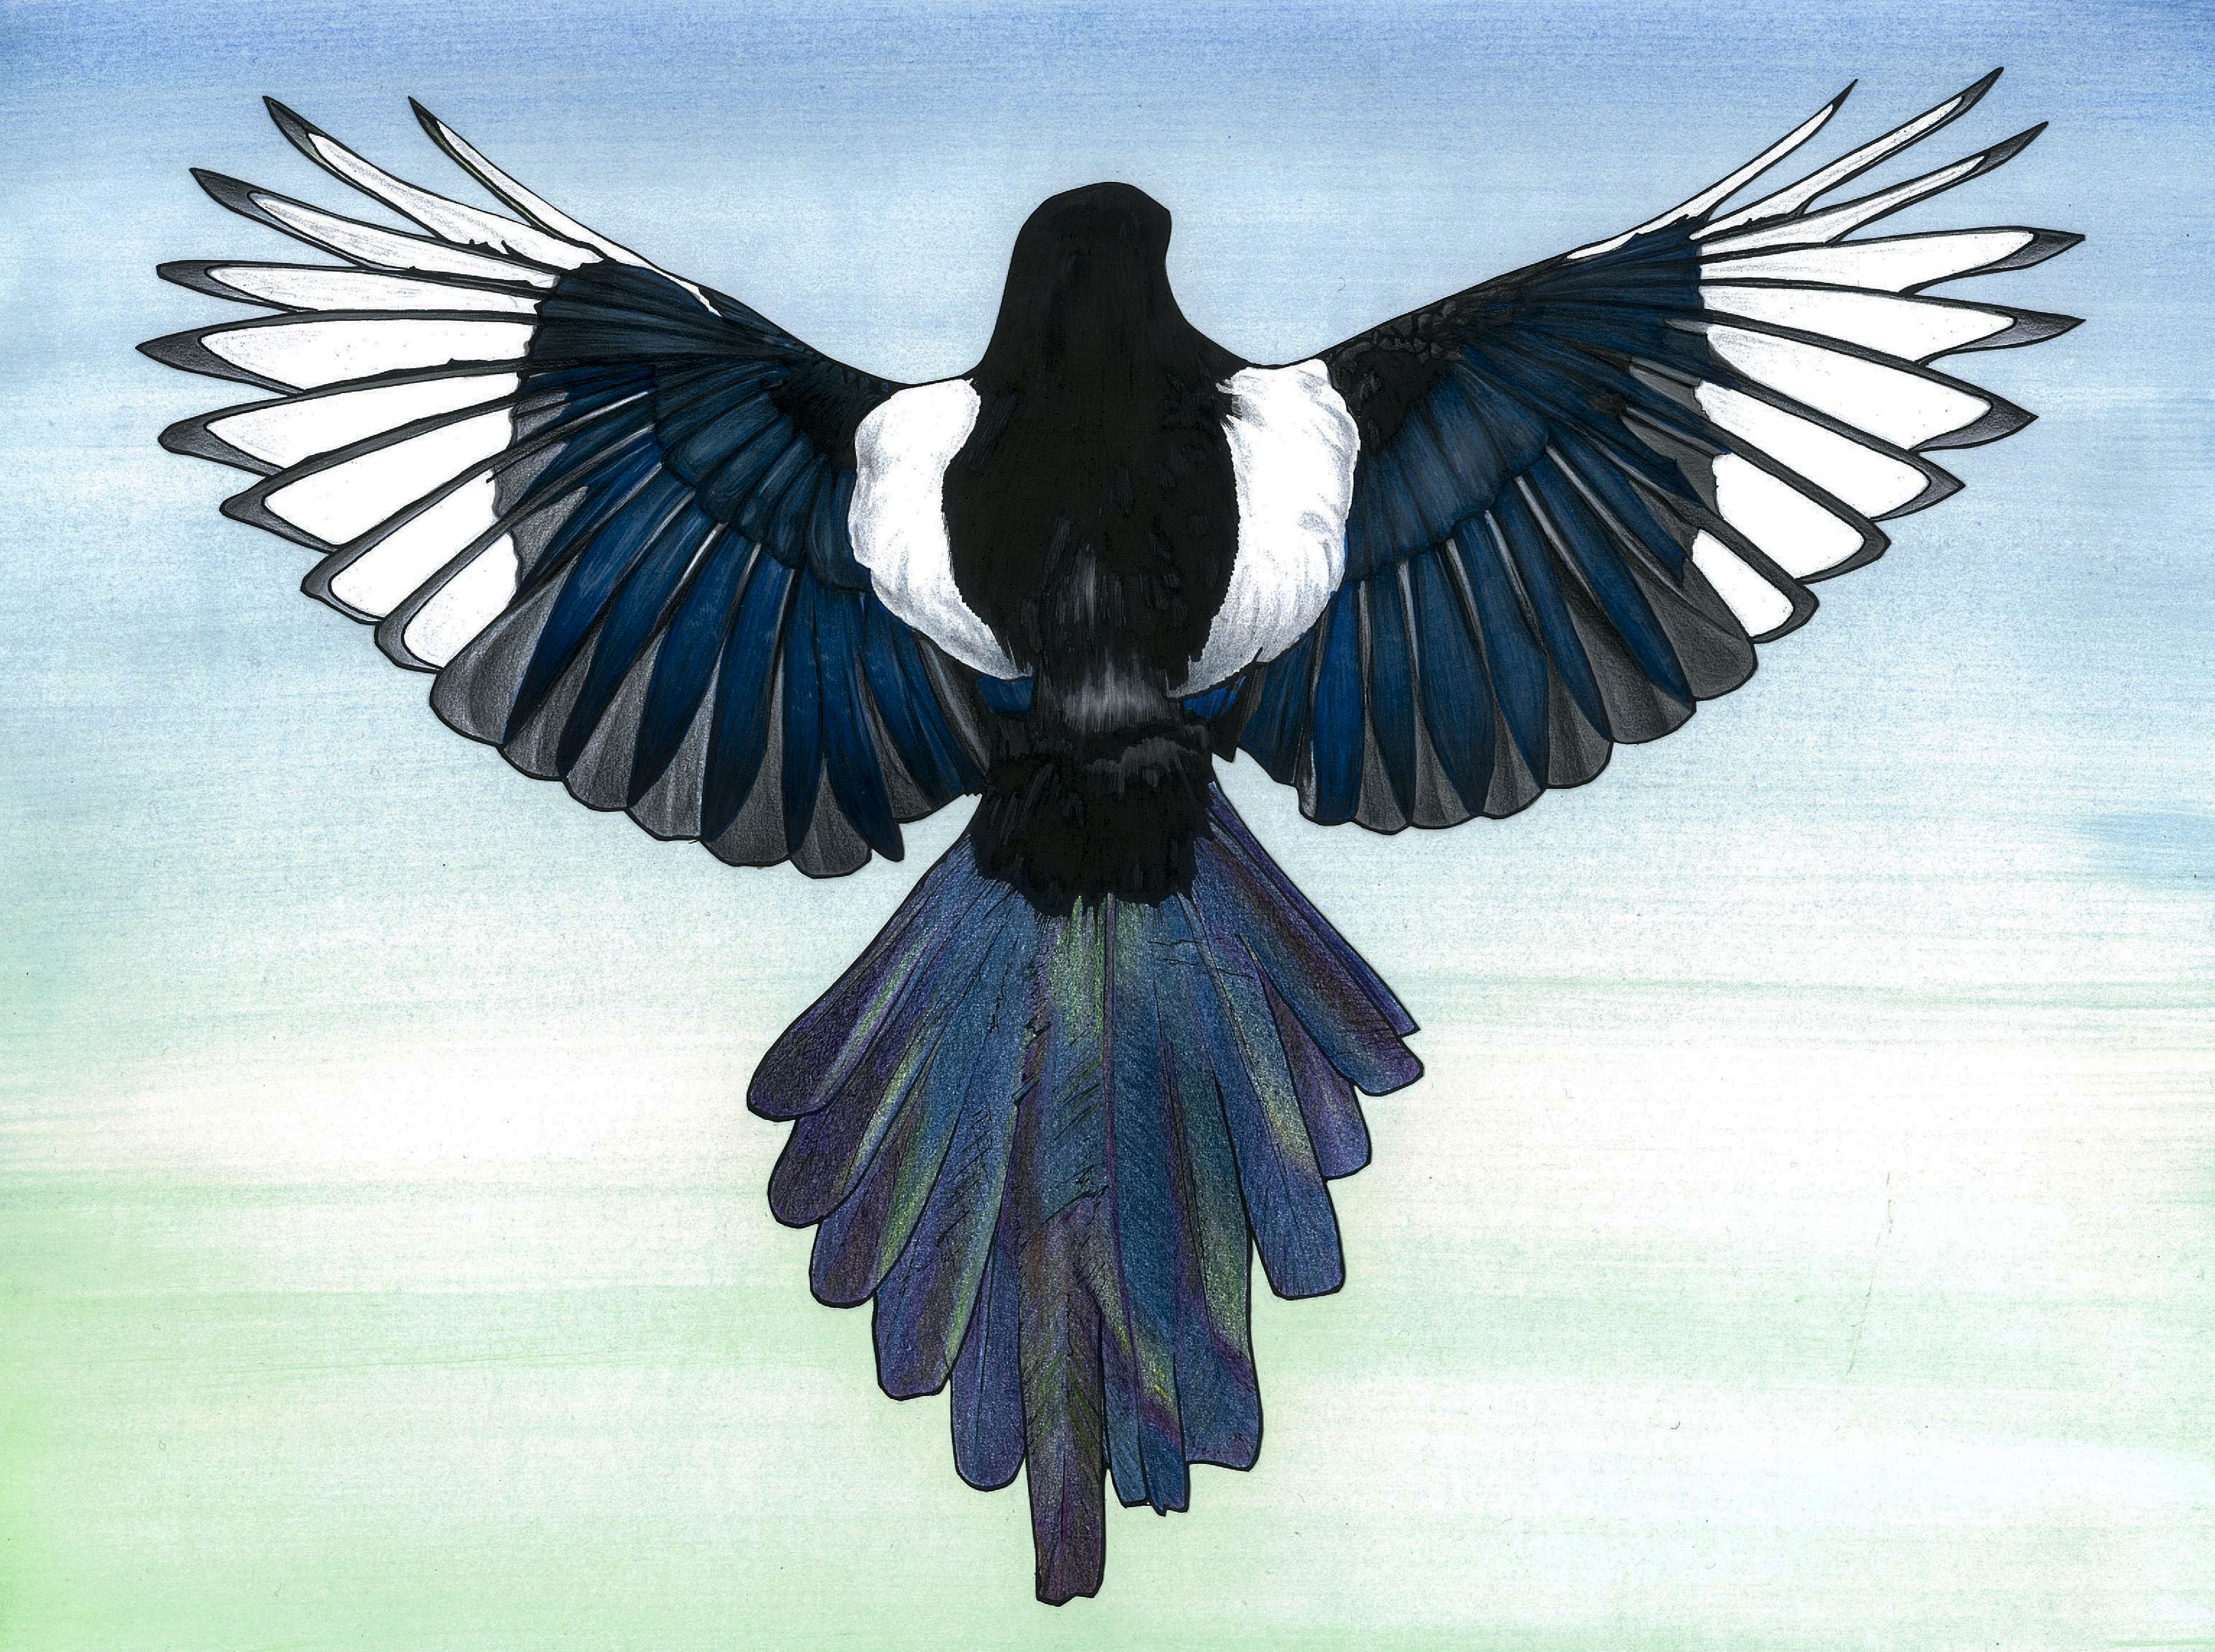 Magpie illustration